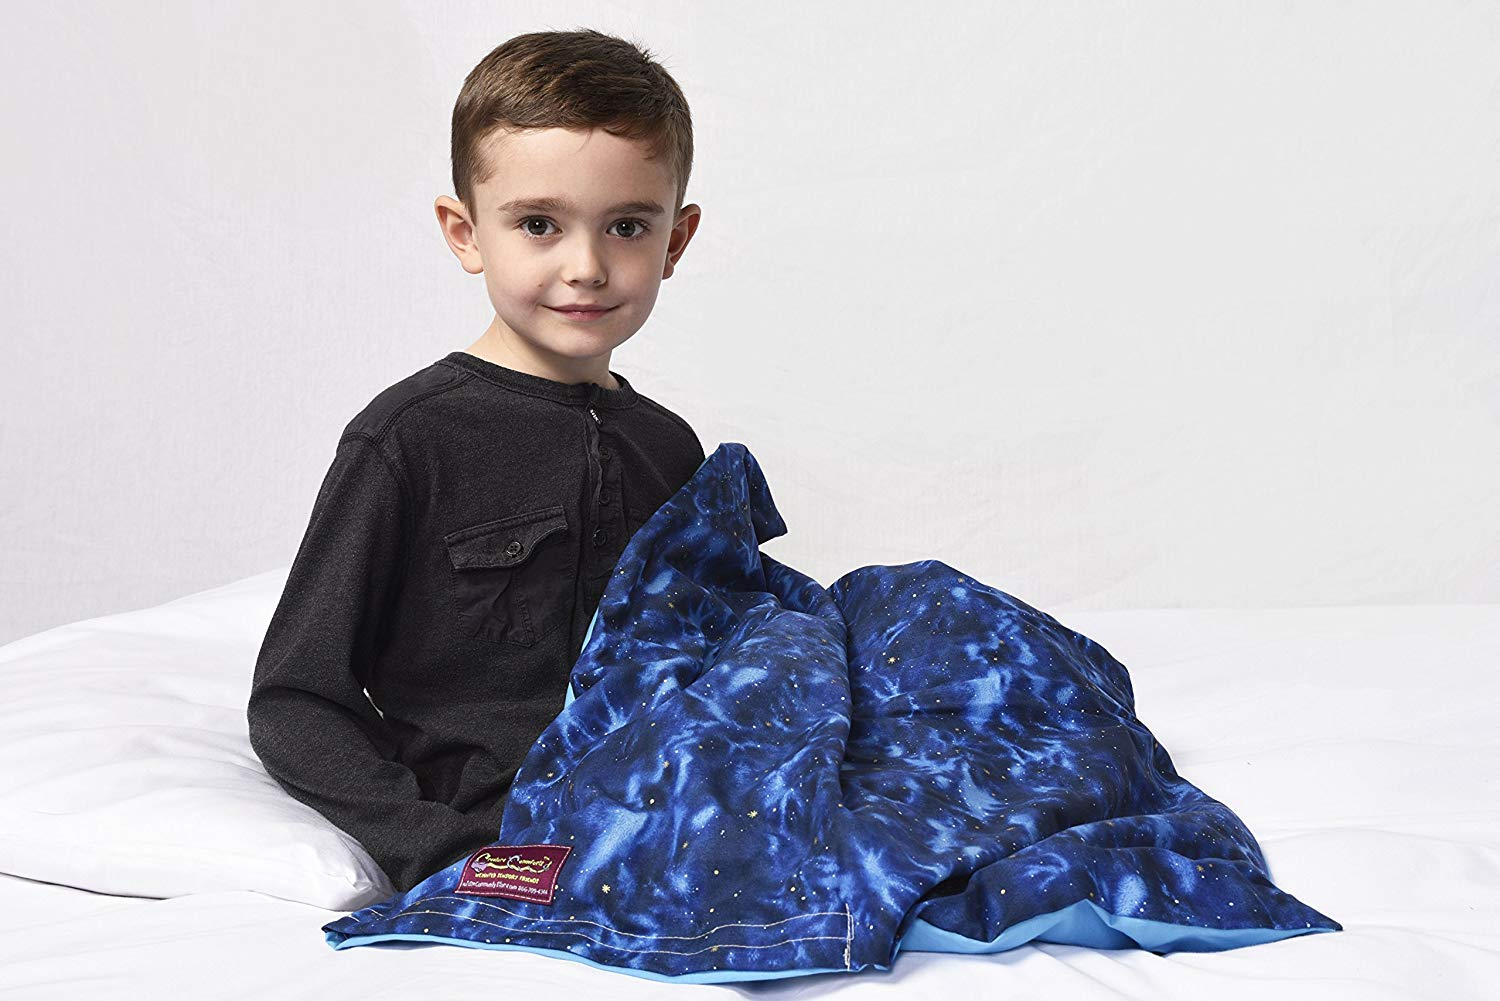 Creature Commforts Child and Toddler Weighted Blanket - Weights from 4lb - 10lb - 7 Colors to Choose from - Handmade in The USA - Safe Organic Filling with Removable Cover (Night and Day, 4lb 25x30)